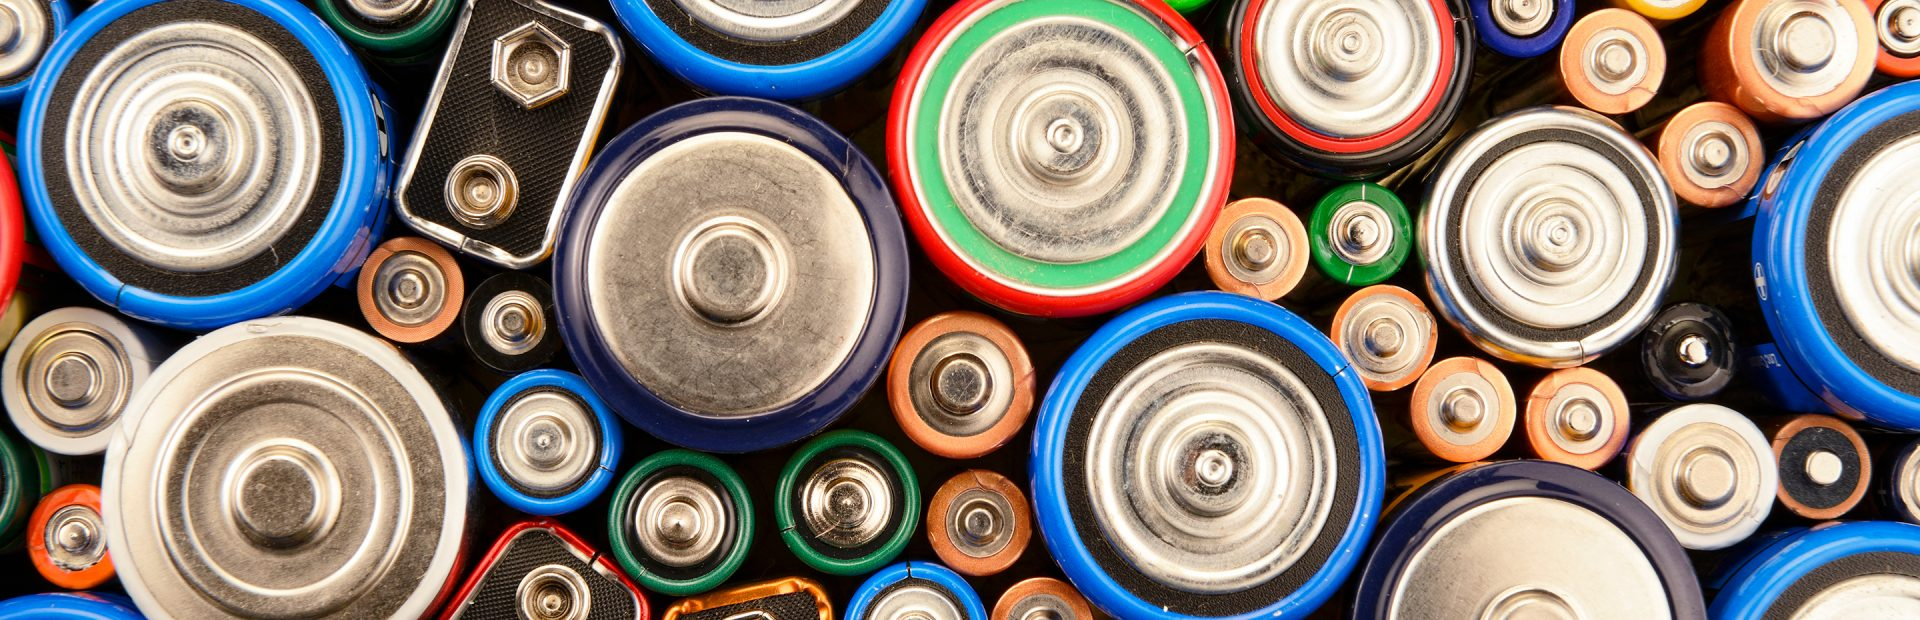 Are you Disposing Your Batteries Properly? – RethinkWaste